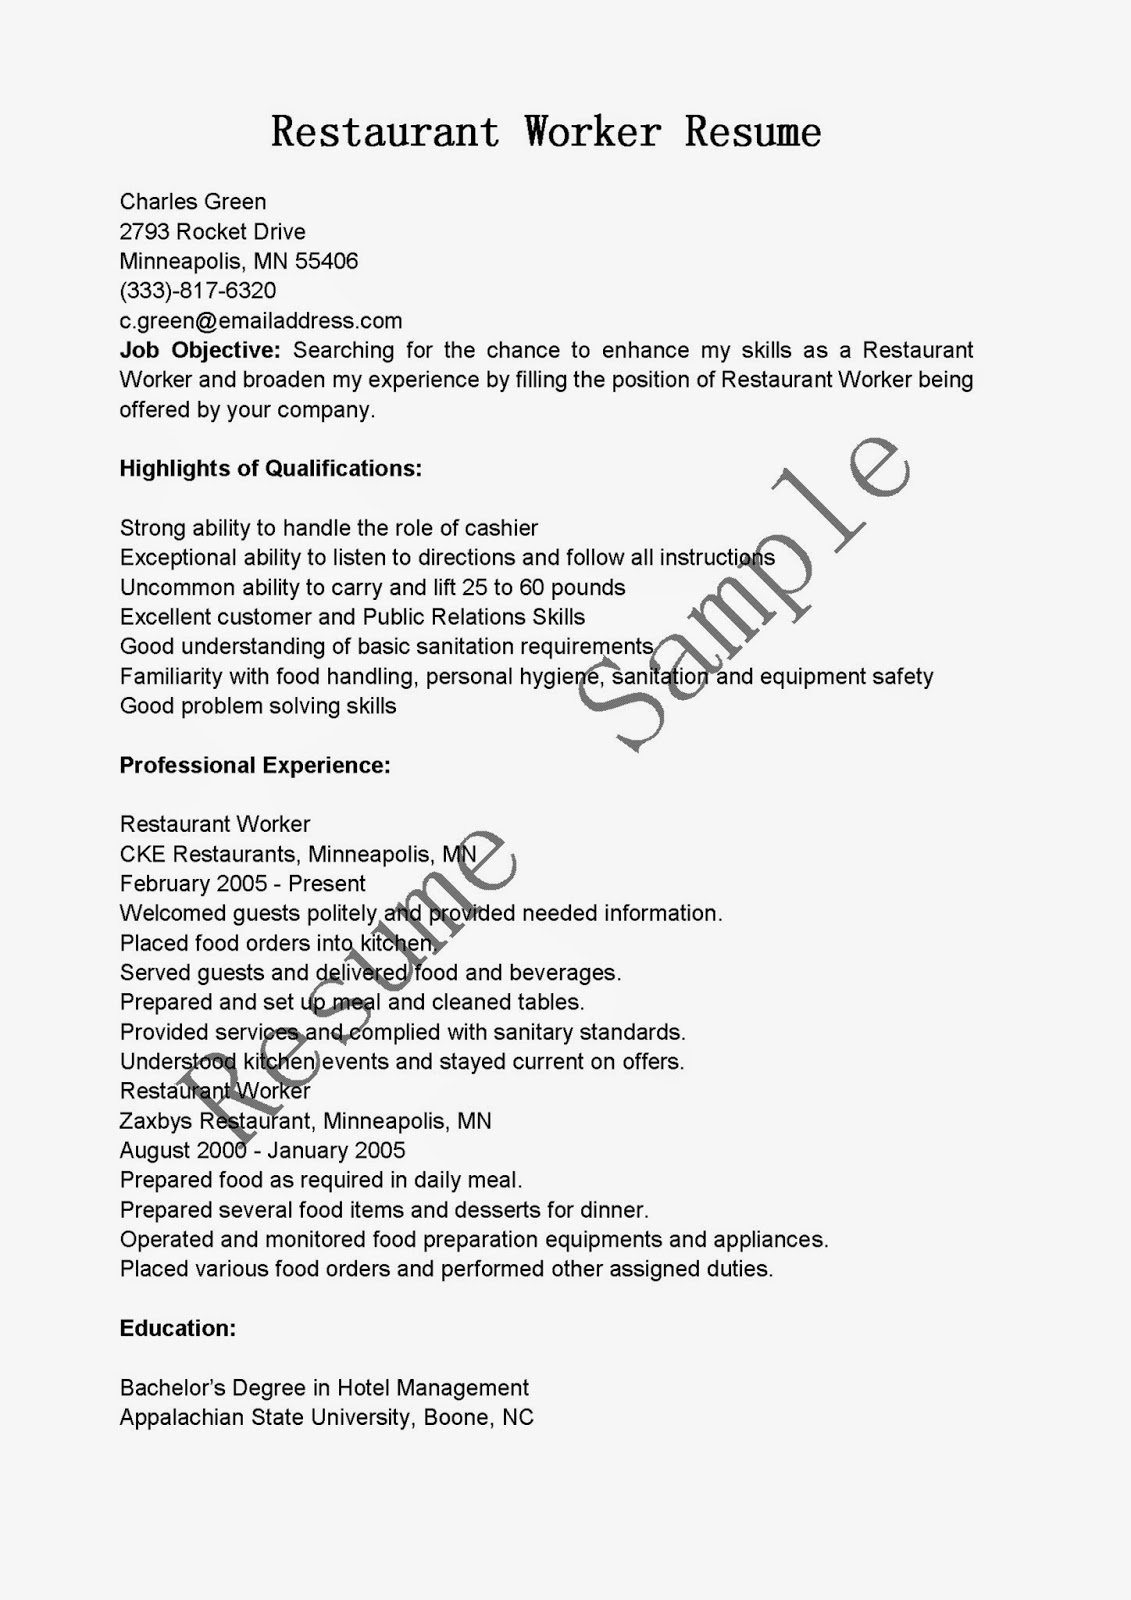 resume samples  restaurant worker resume sample